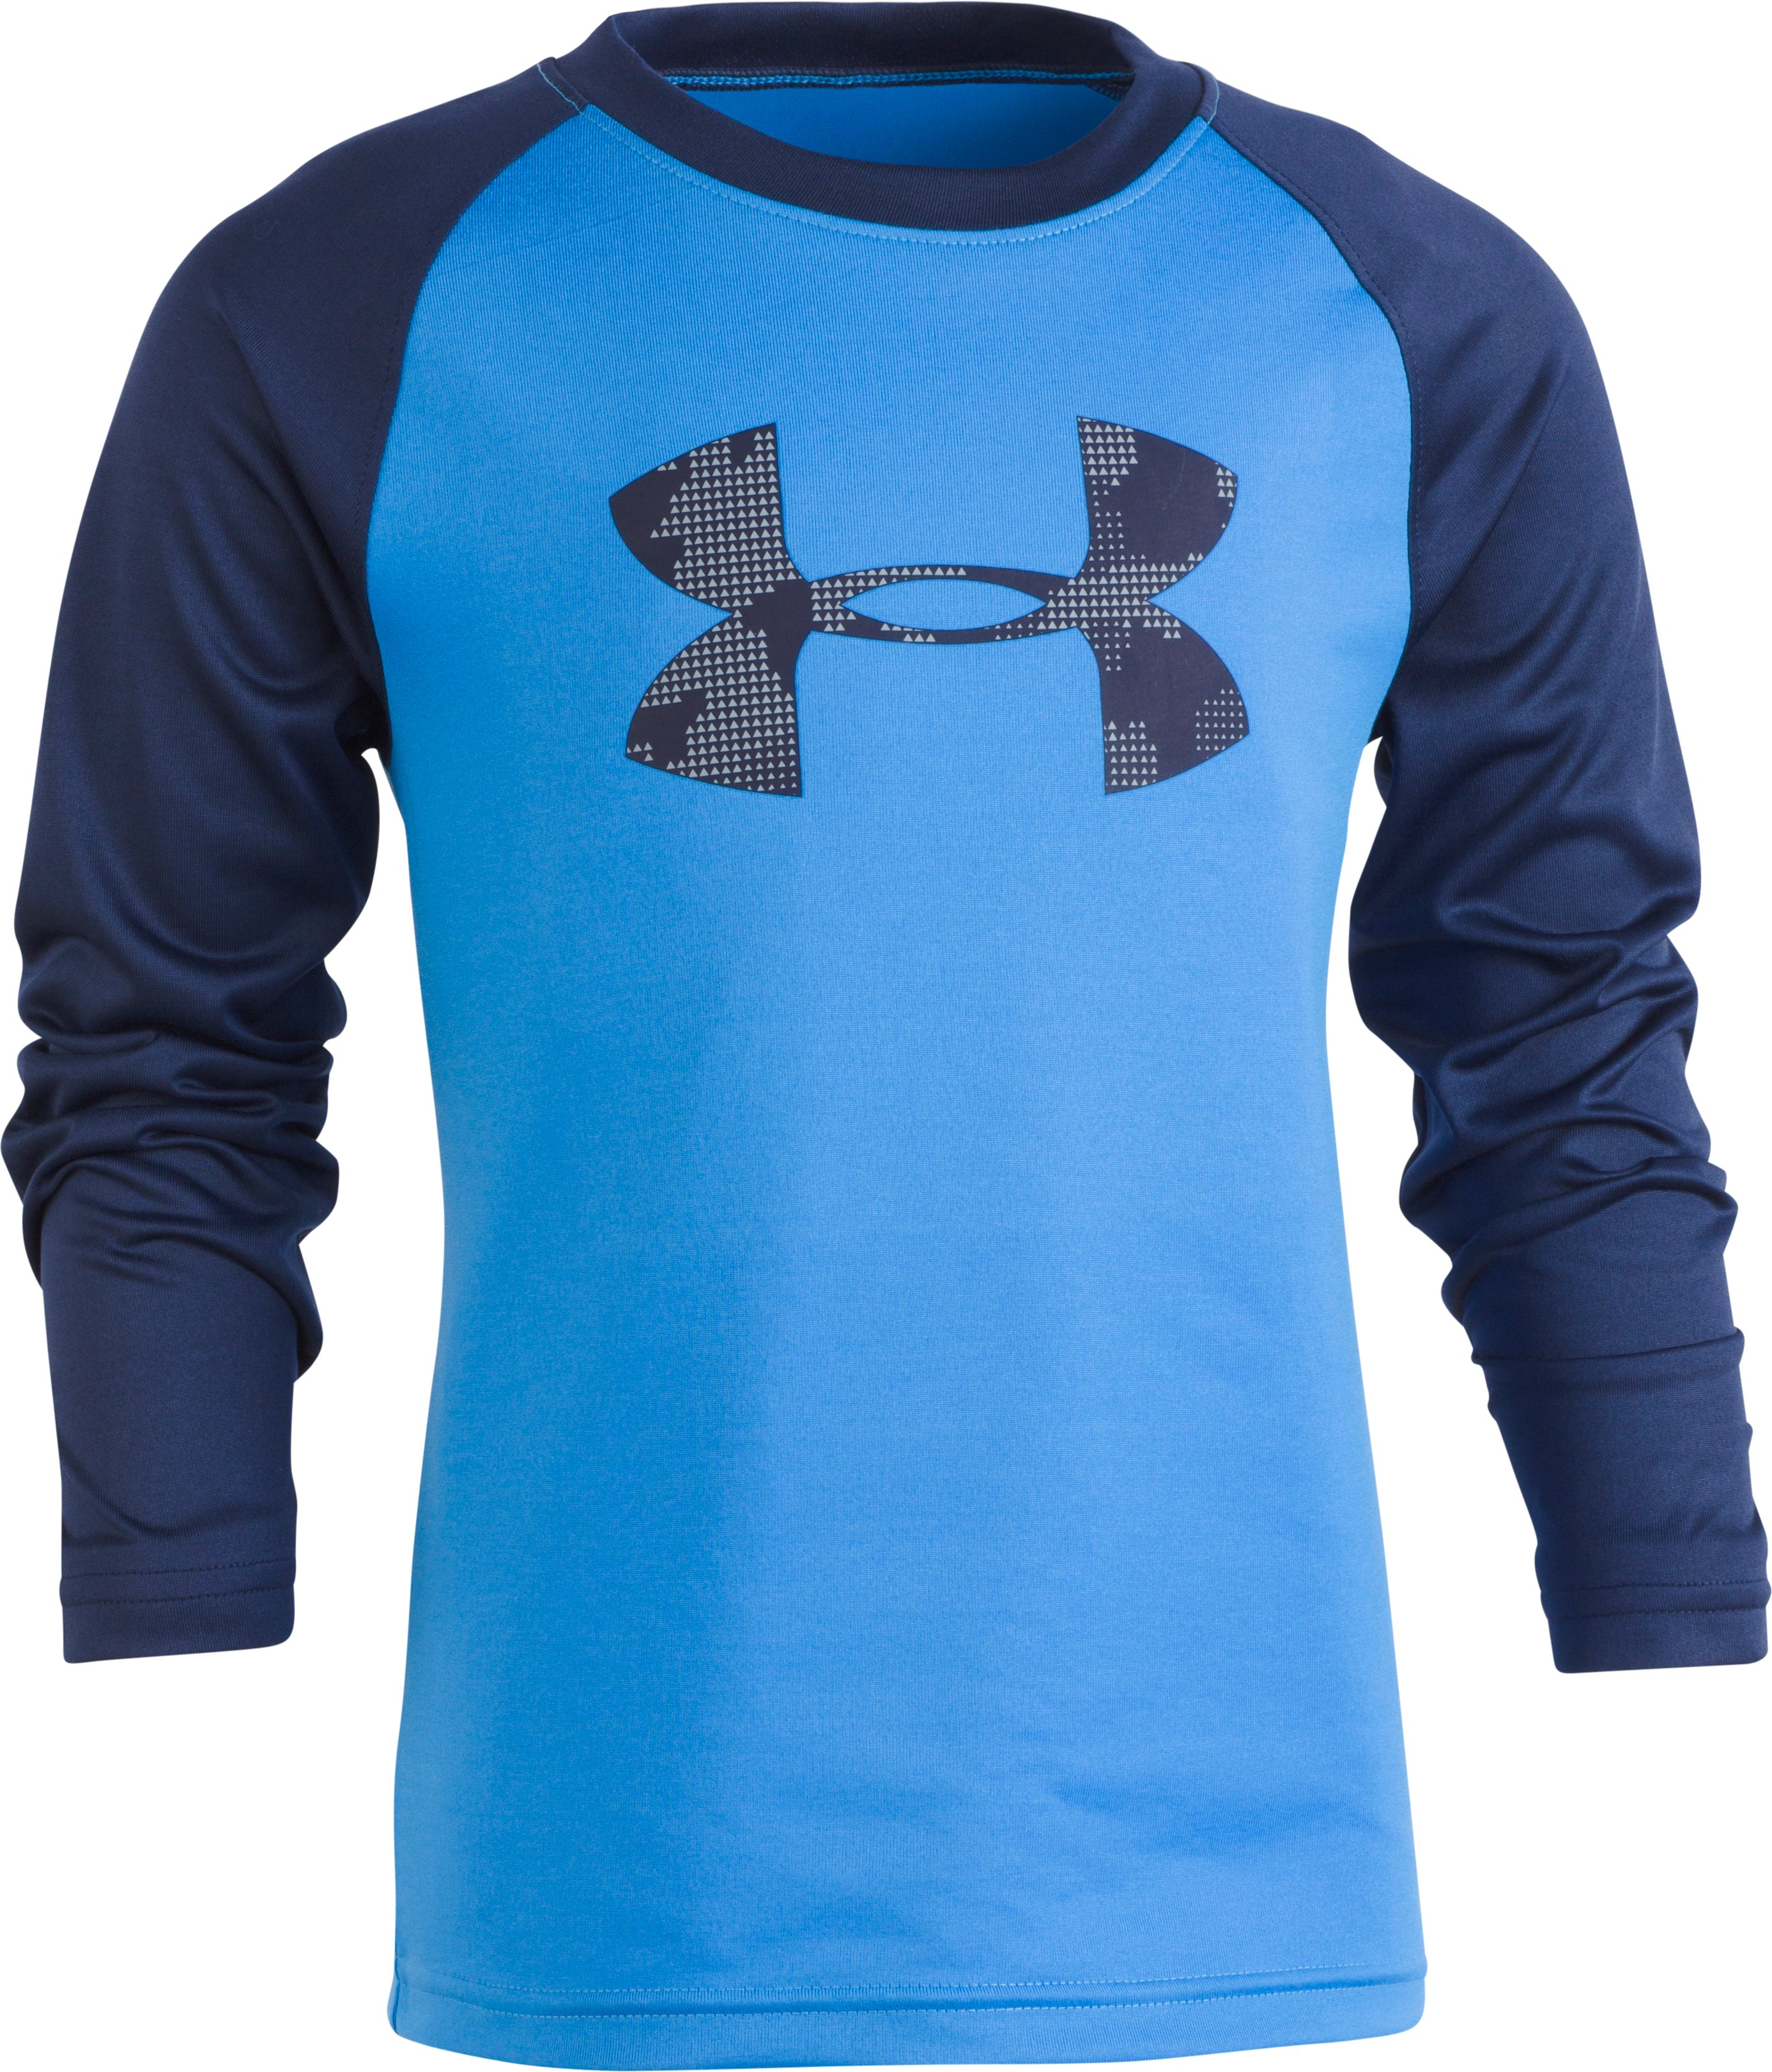 Boys' Pre-School UA Utility Camo Big Logo Long Sleeve, Mako Blue, Laydown